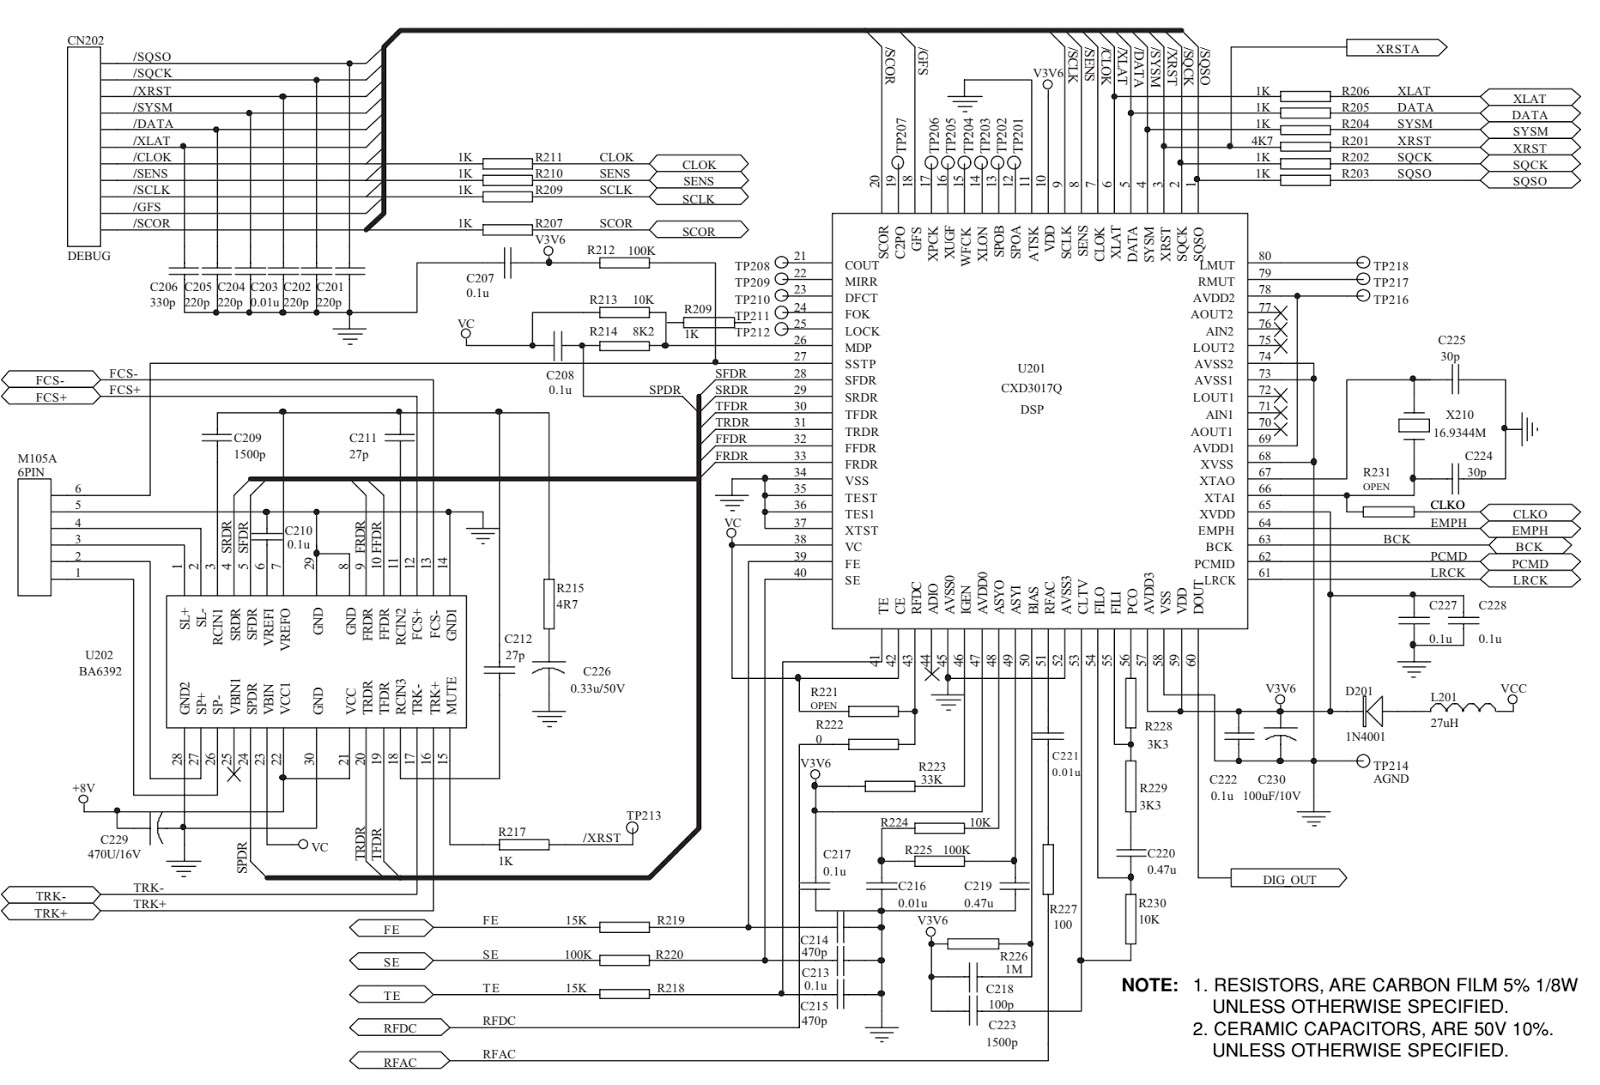 clarion cd player wiring diagram 1990 jeep wrangler horn dvd head unit changer